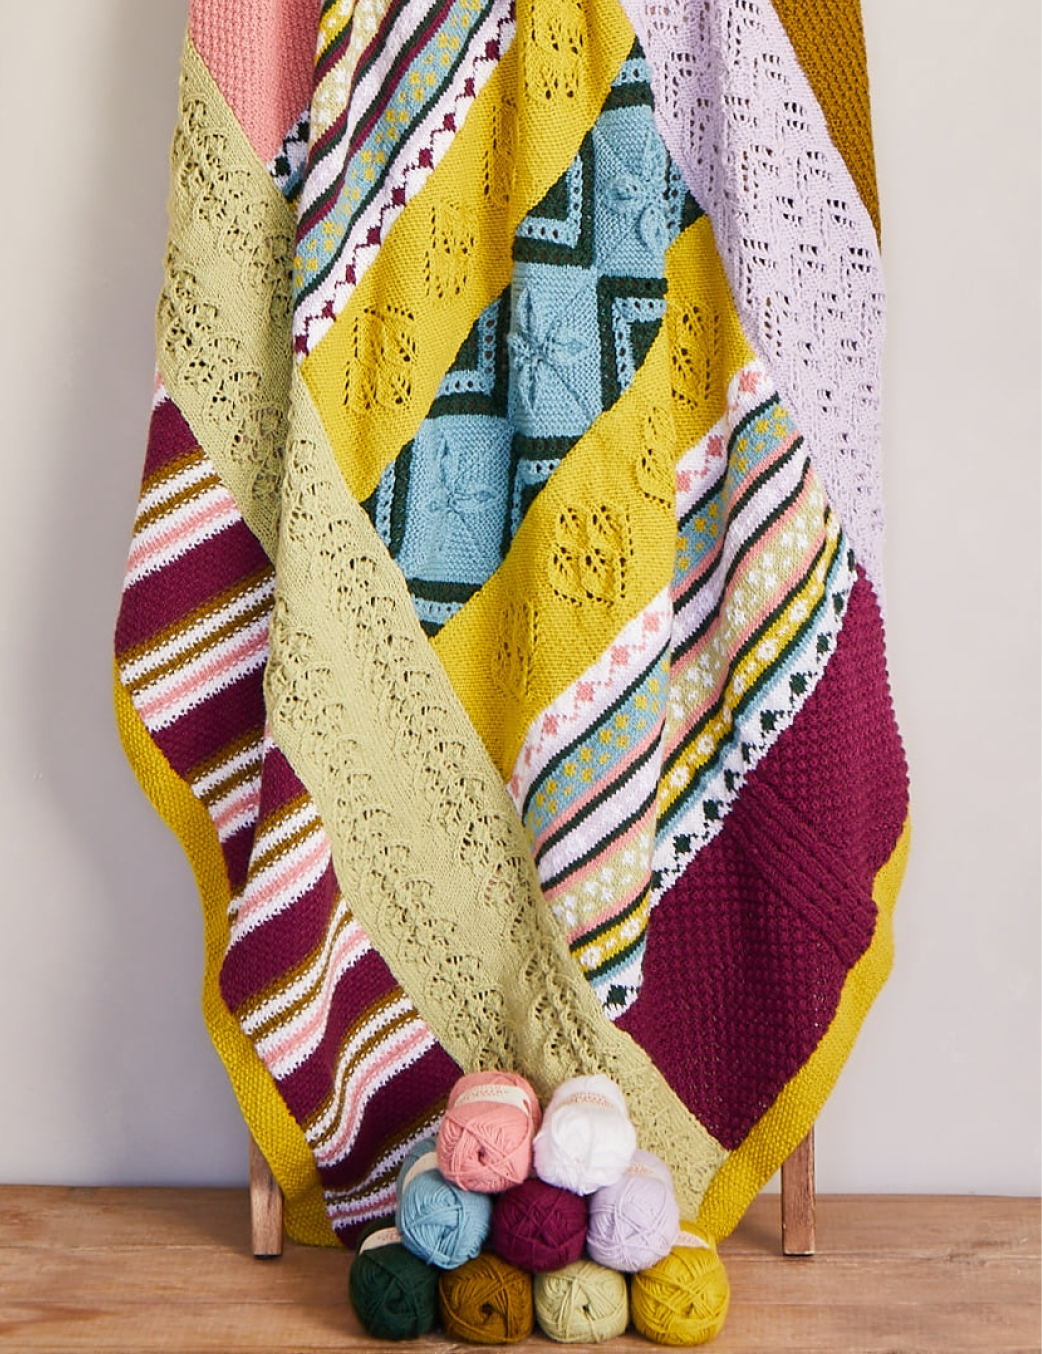 Sirdar's No Place Like Home KAL - the Yorkshire Welcome colourway